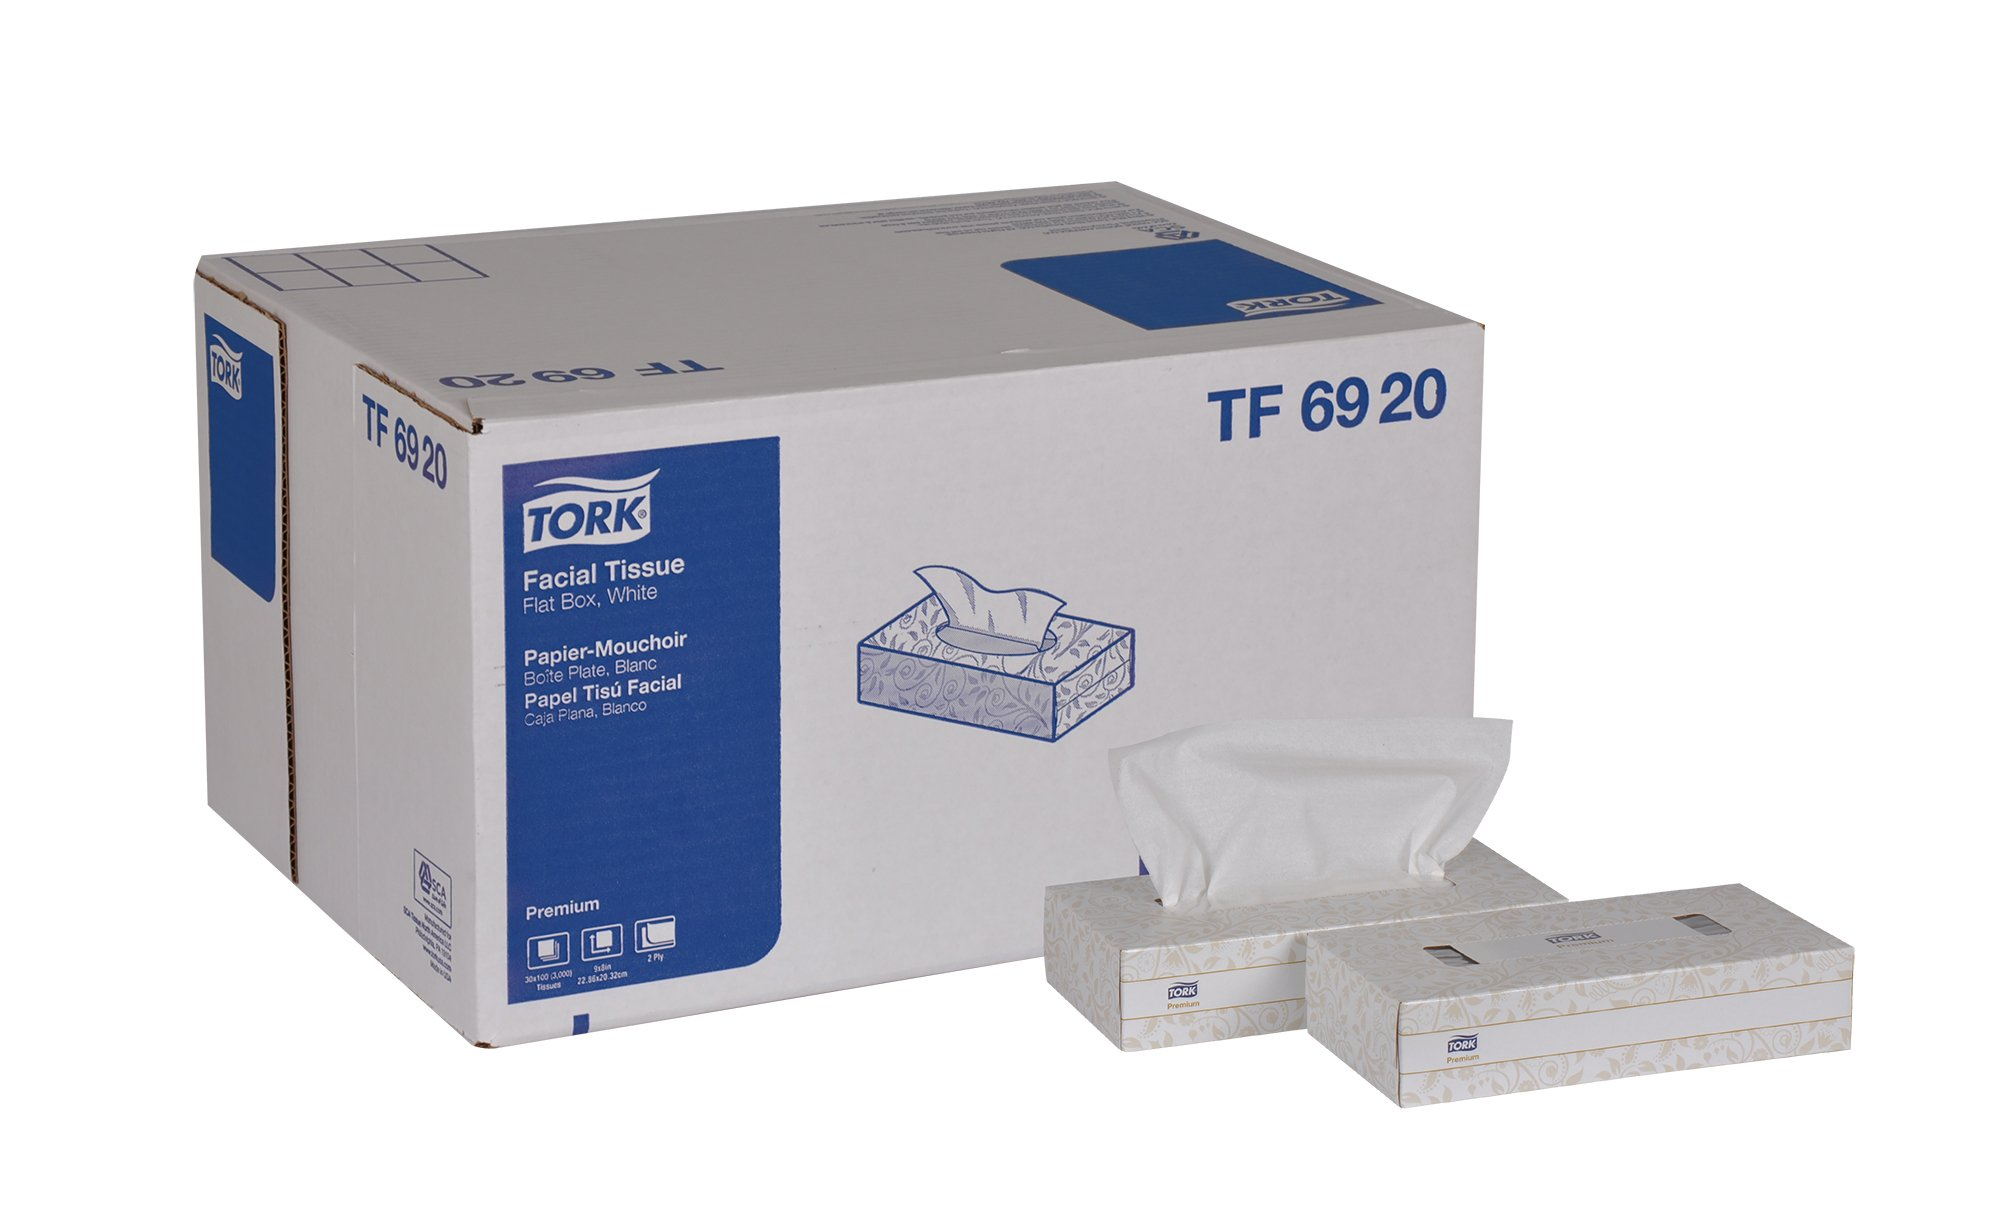 Tork Premium TF6920A Facial Tissue, Flat Box, 2-Ply, 8.0'' Width x 8.0'' Length, White (Case of 30 Boxes, 100 per Box, 3,000 Sheets)